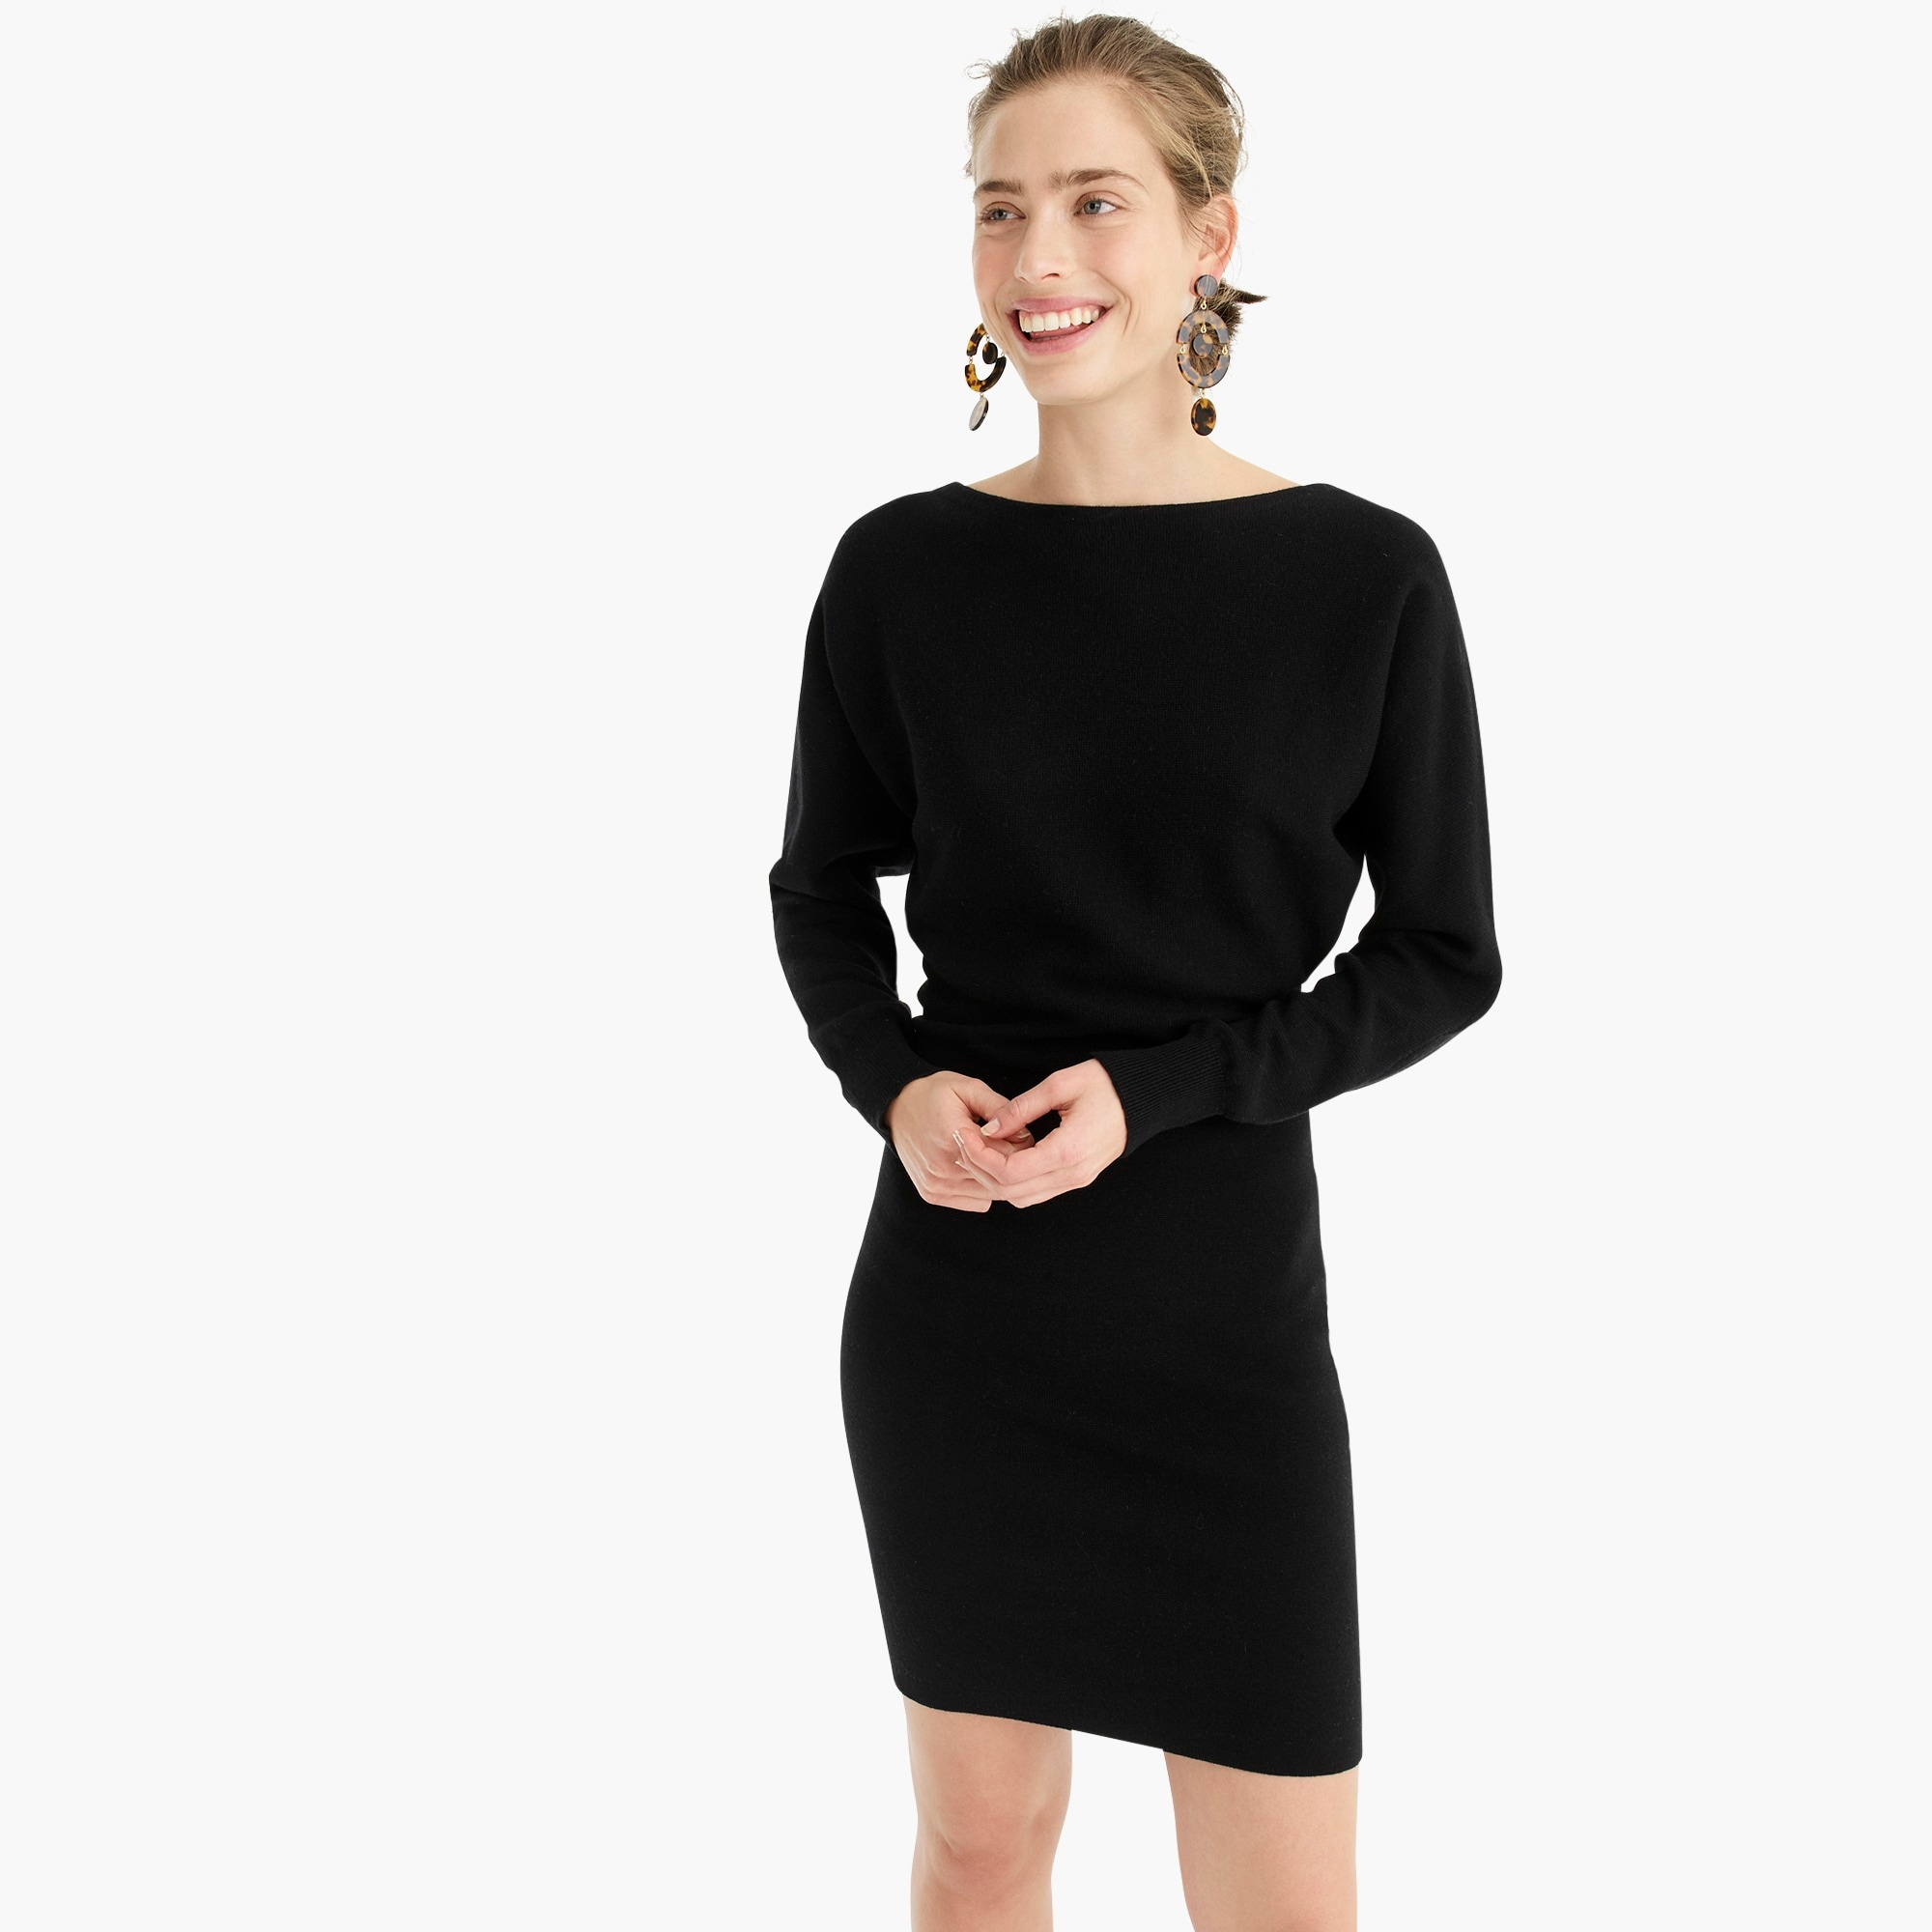 womens Dolman-sleeve sweater dress